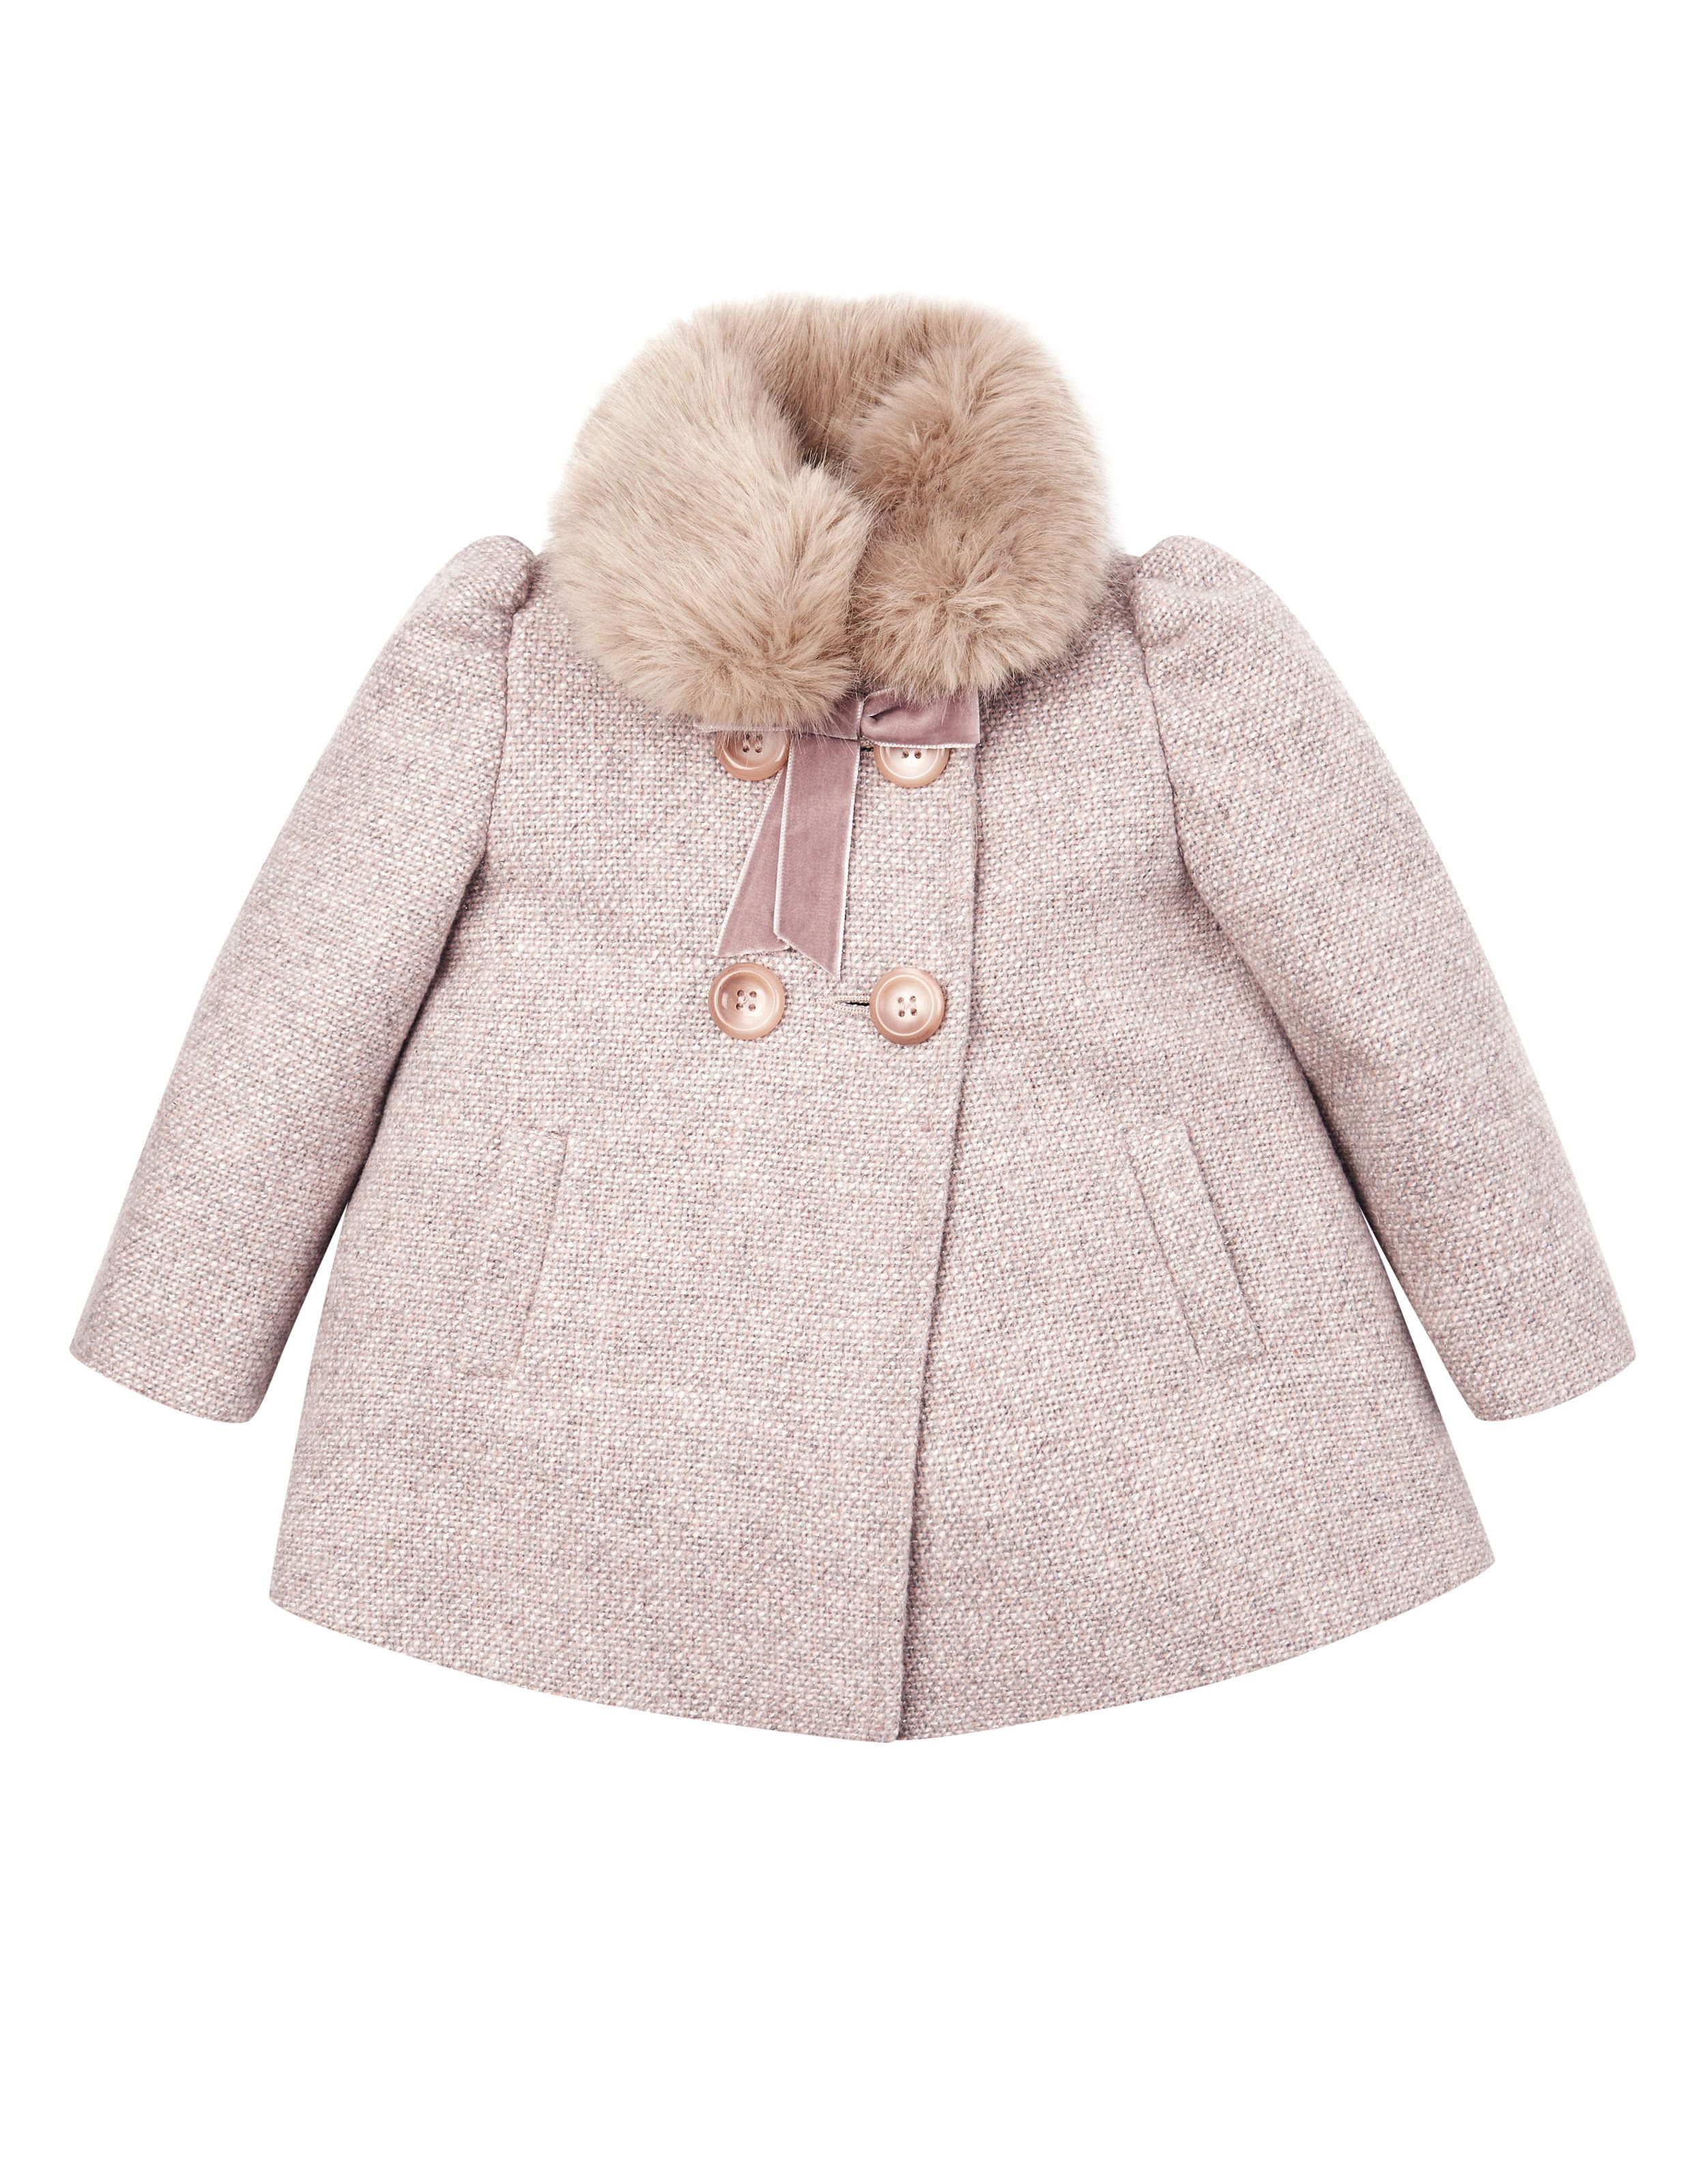 ca89af79b Baby Claire Coat with Fur